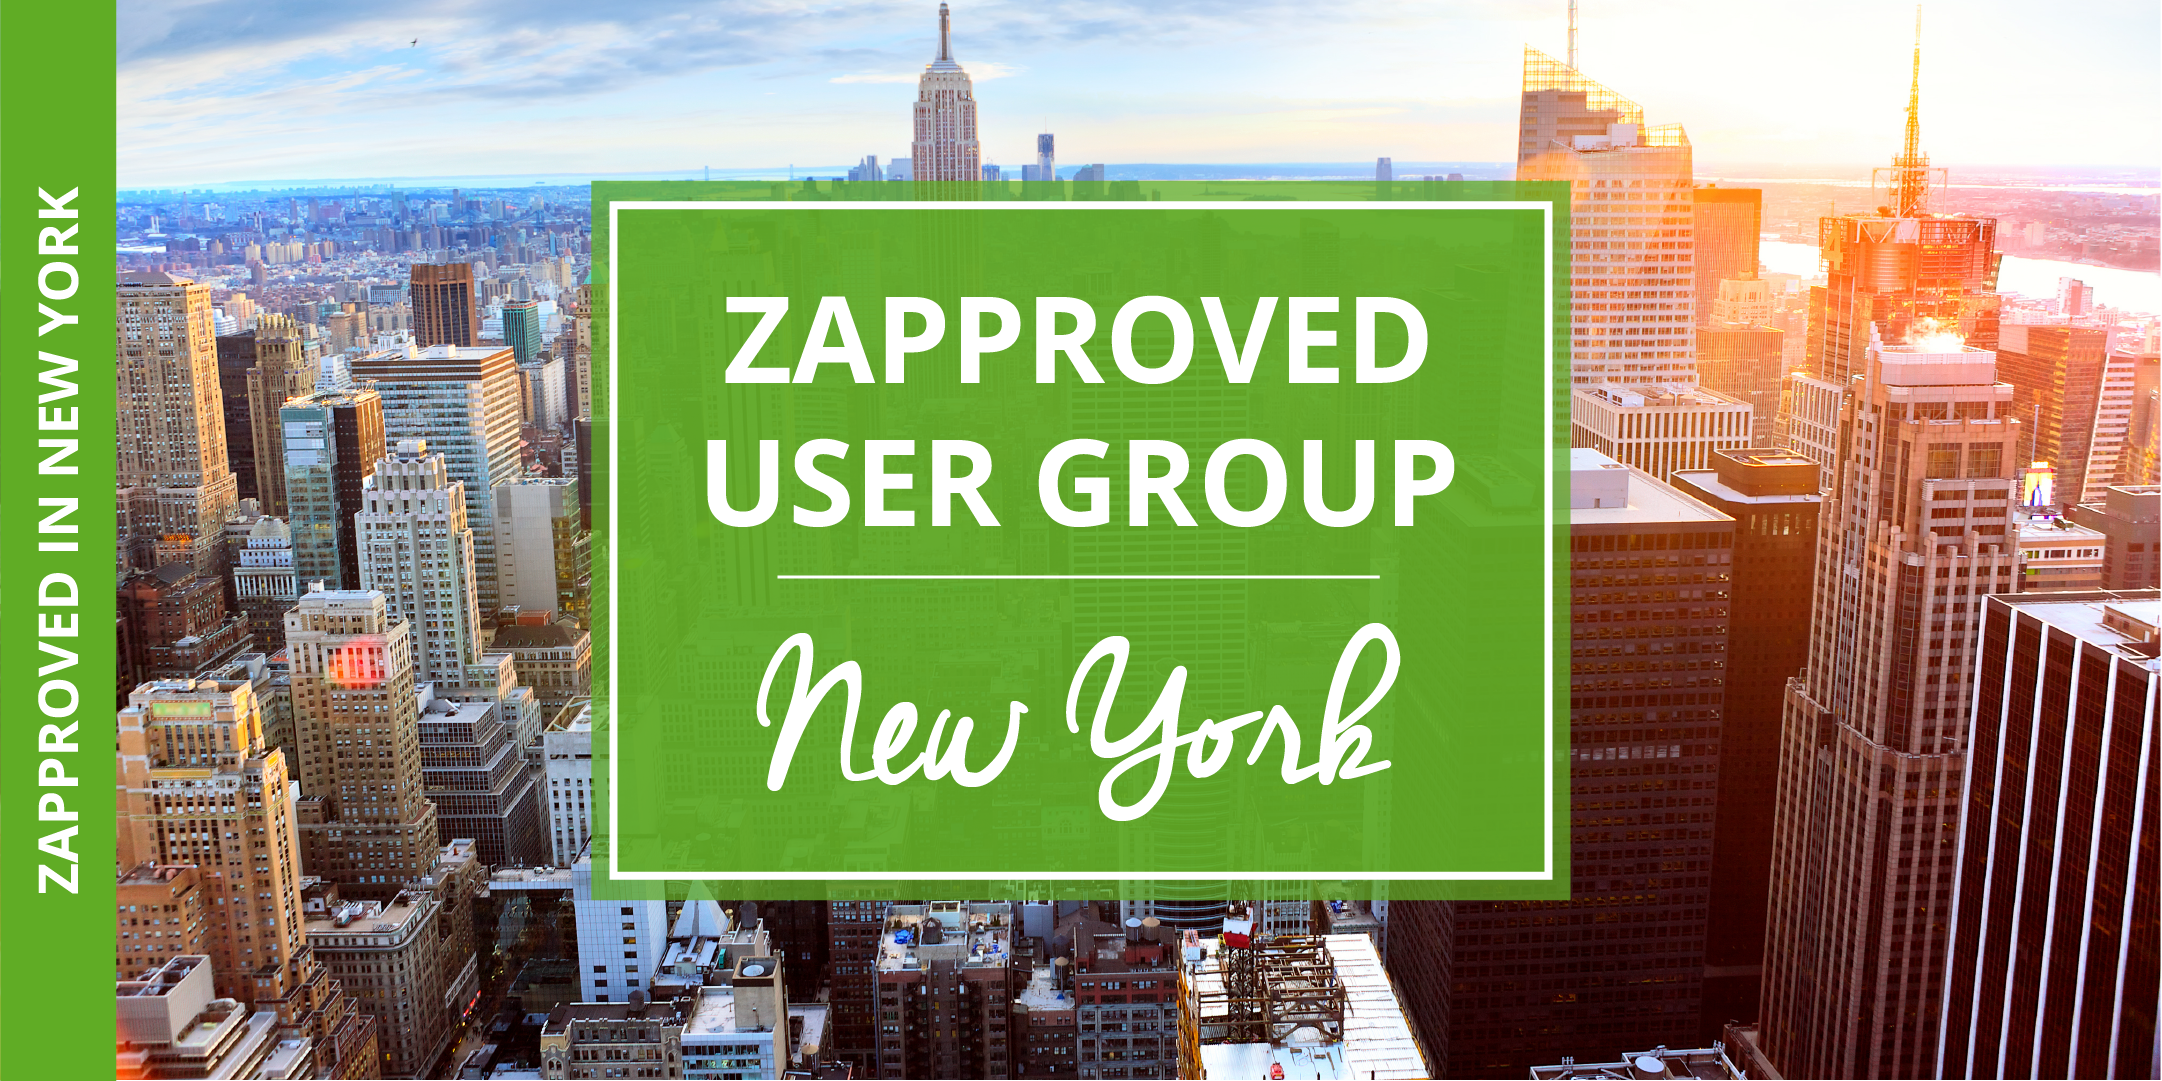 Zapproved 2018 User Group in New York